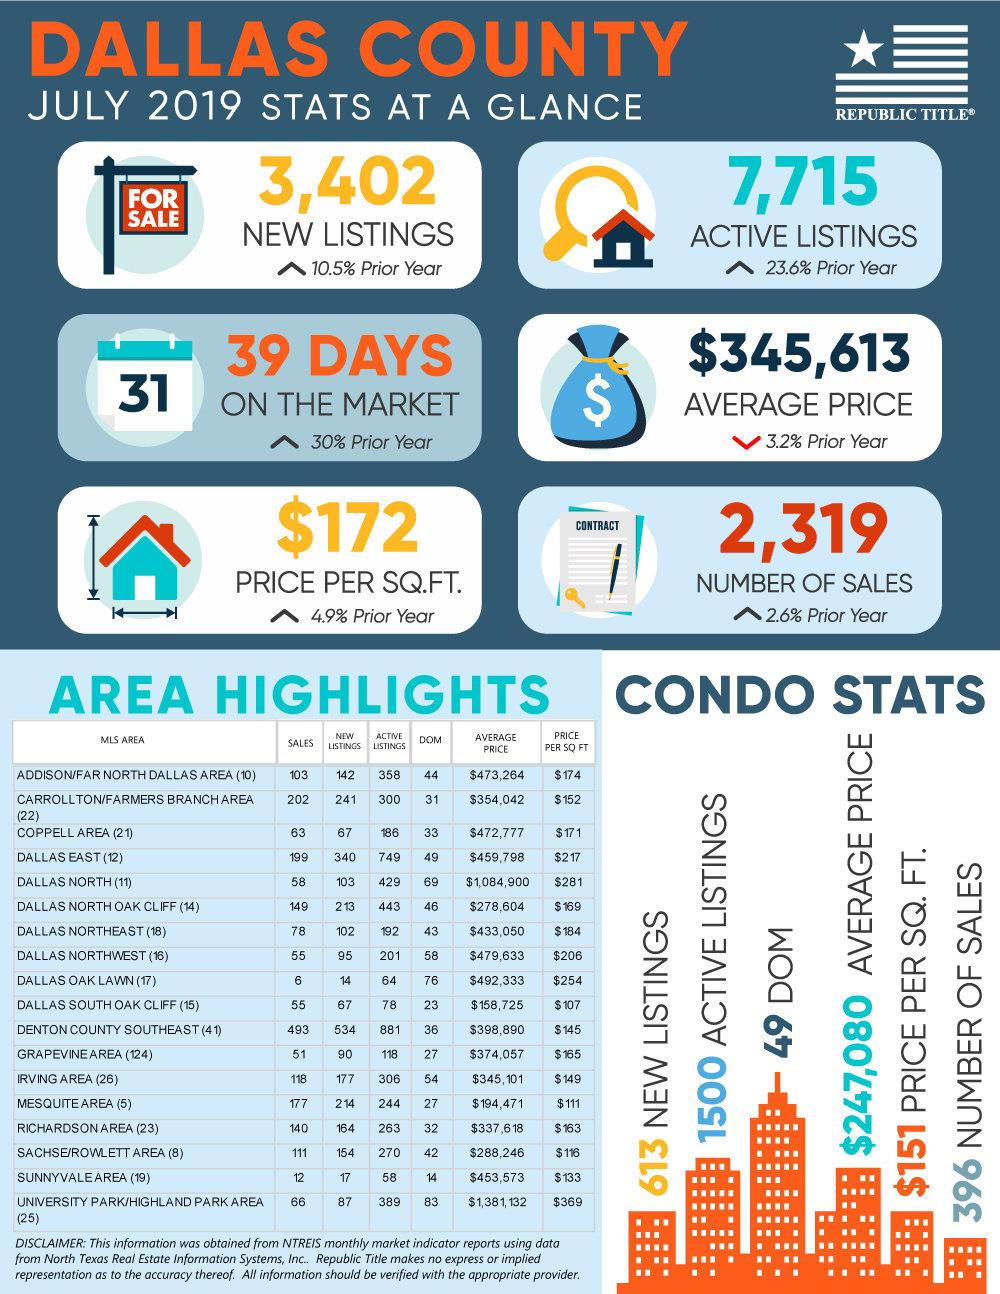 Dallas County Housing Market Update - Home and Condo Stats July 2019